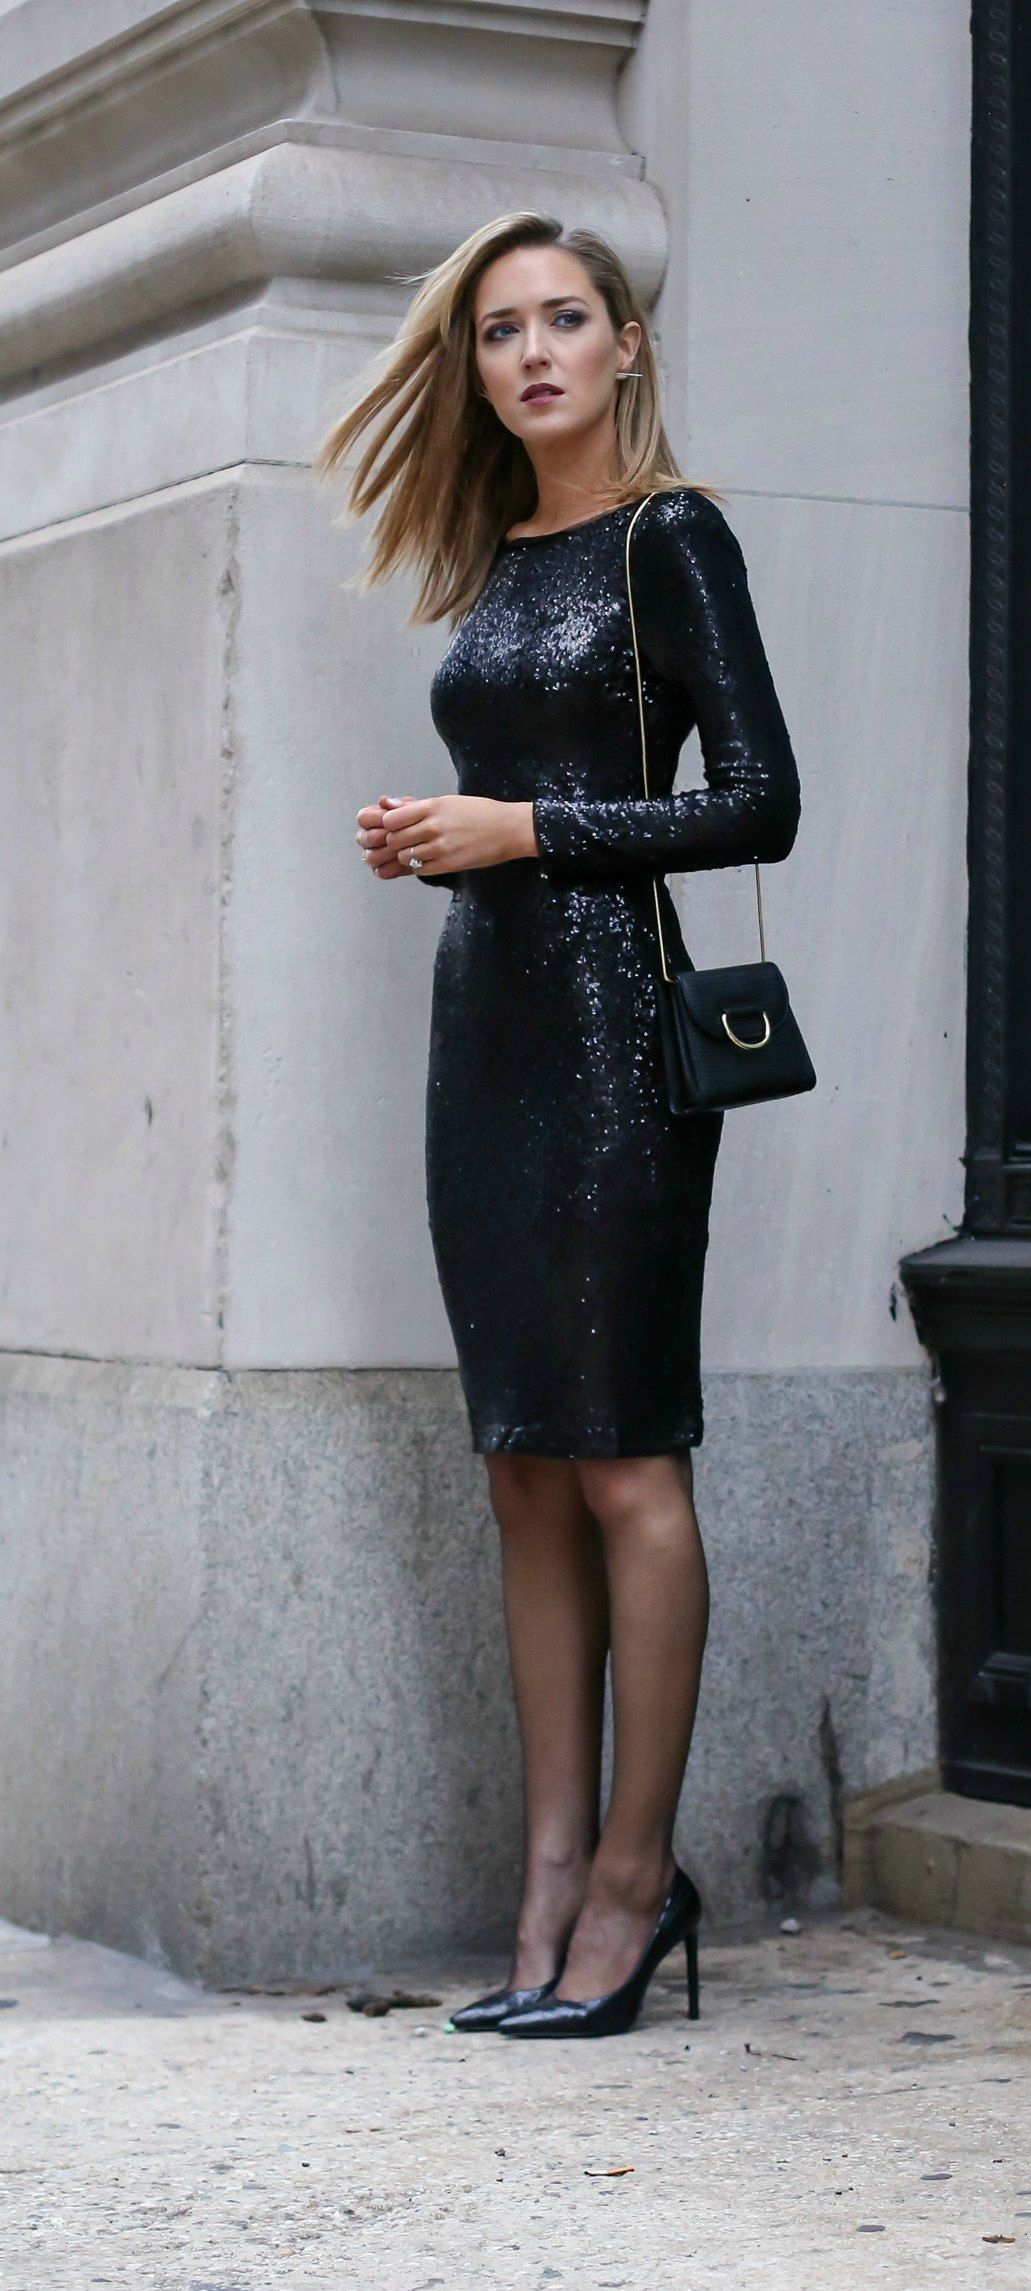 Bodycon dress with stockings